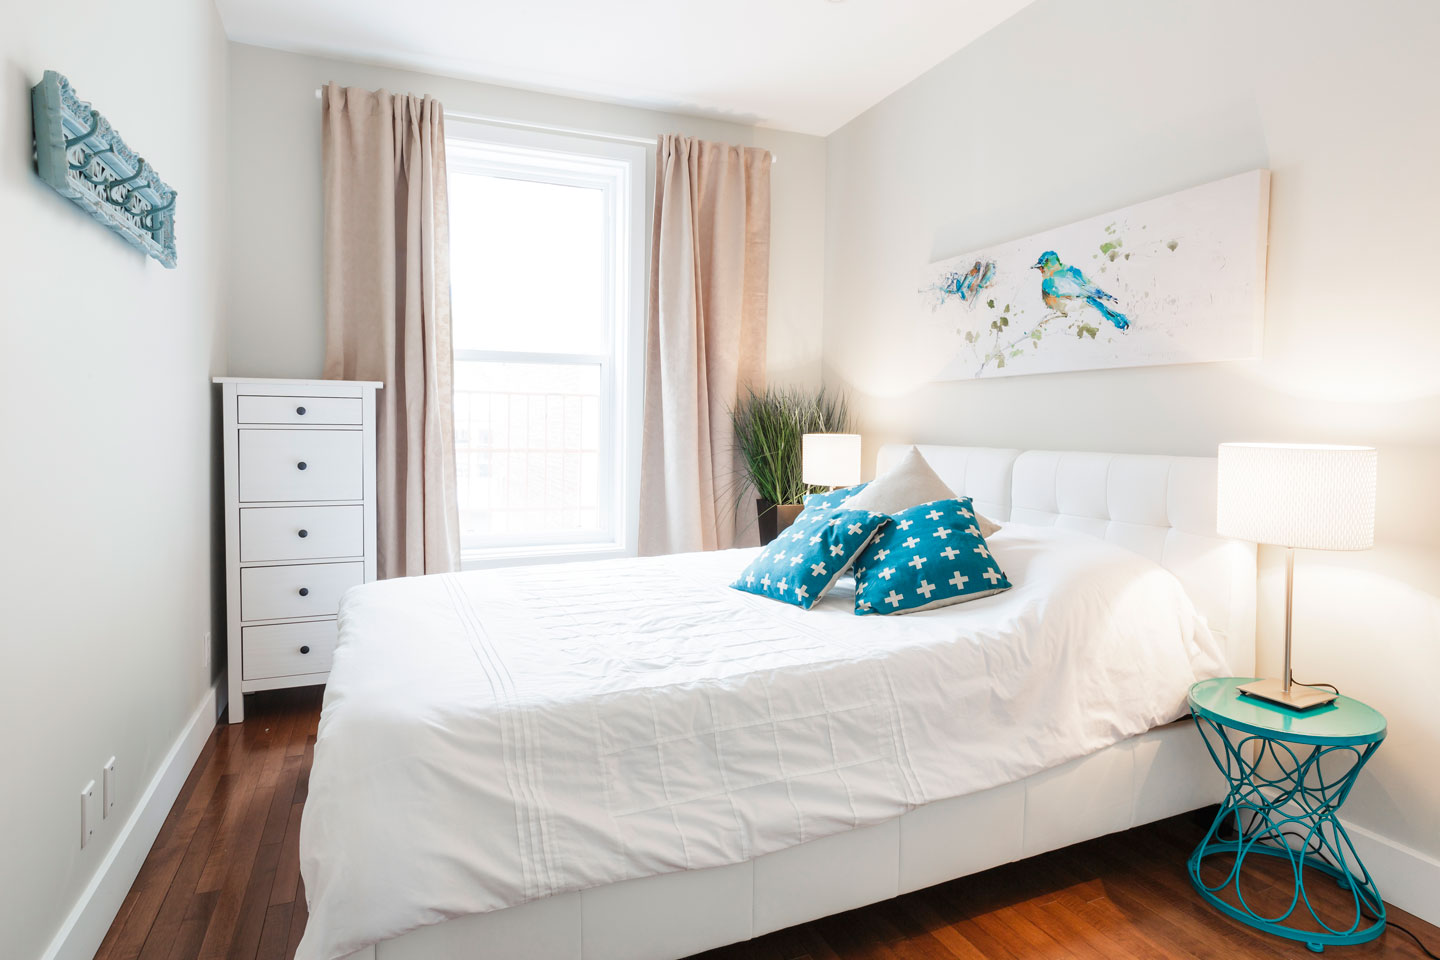 Fabfour: 4 closed bedrooms with comfortable memory foam mattress